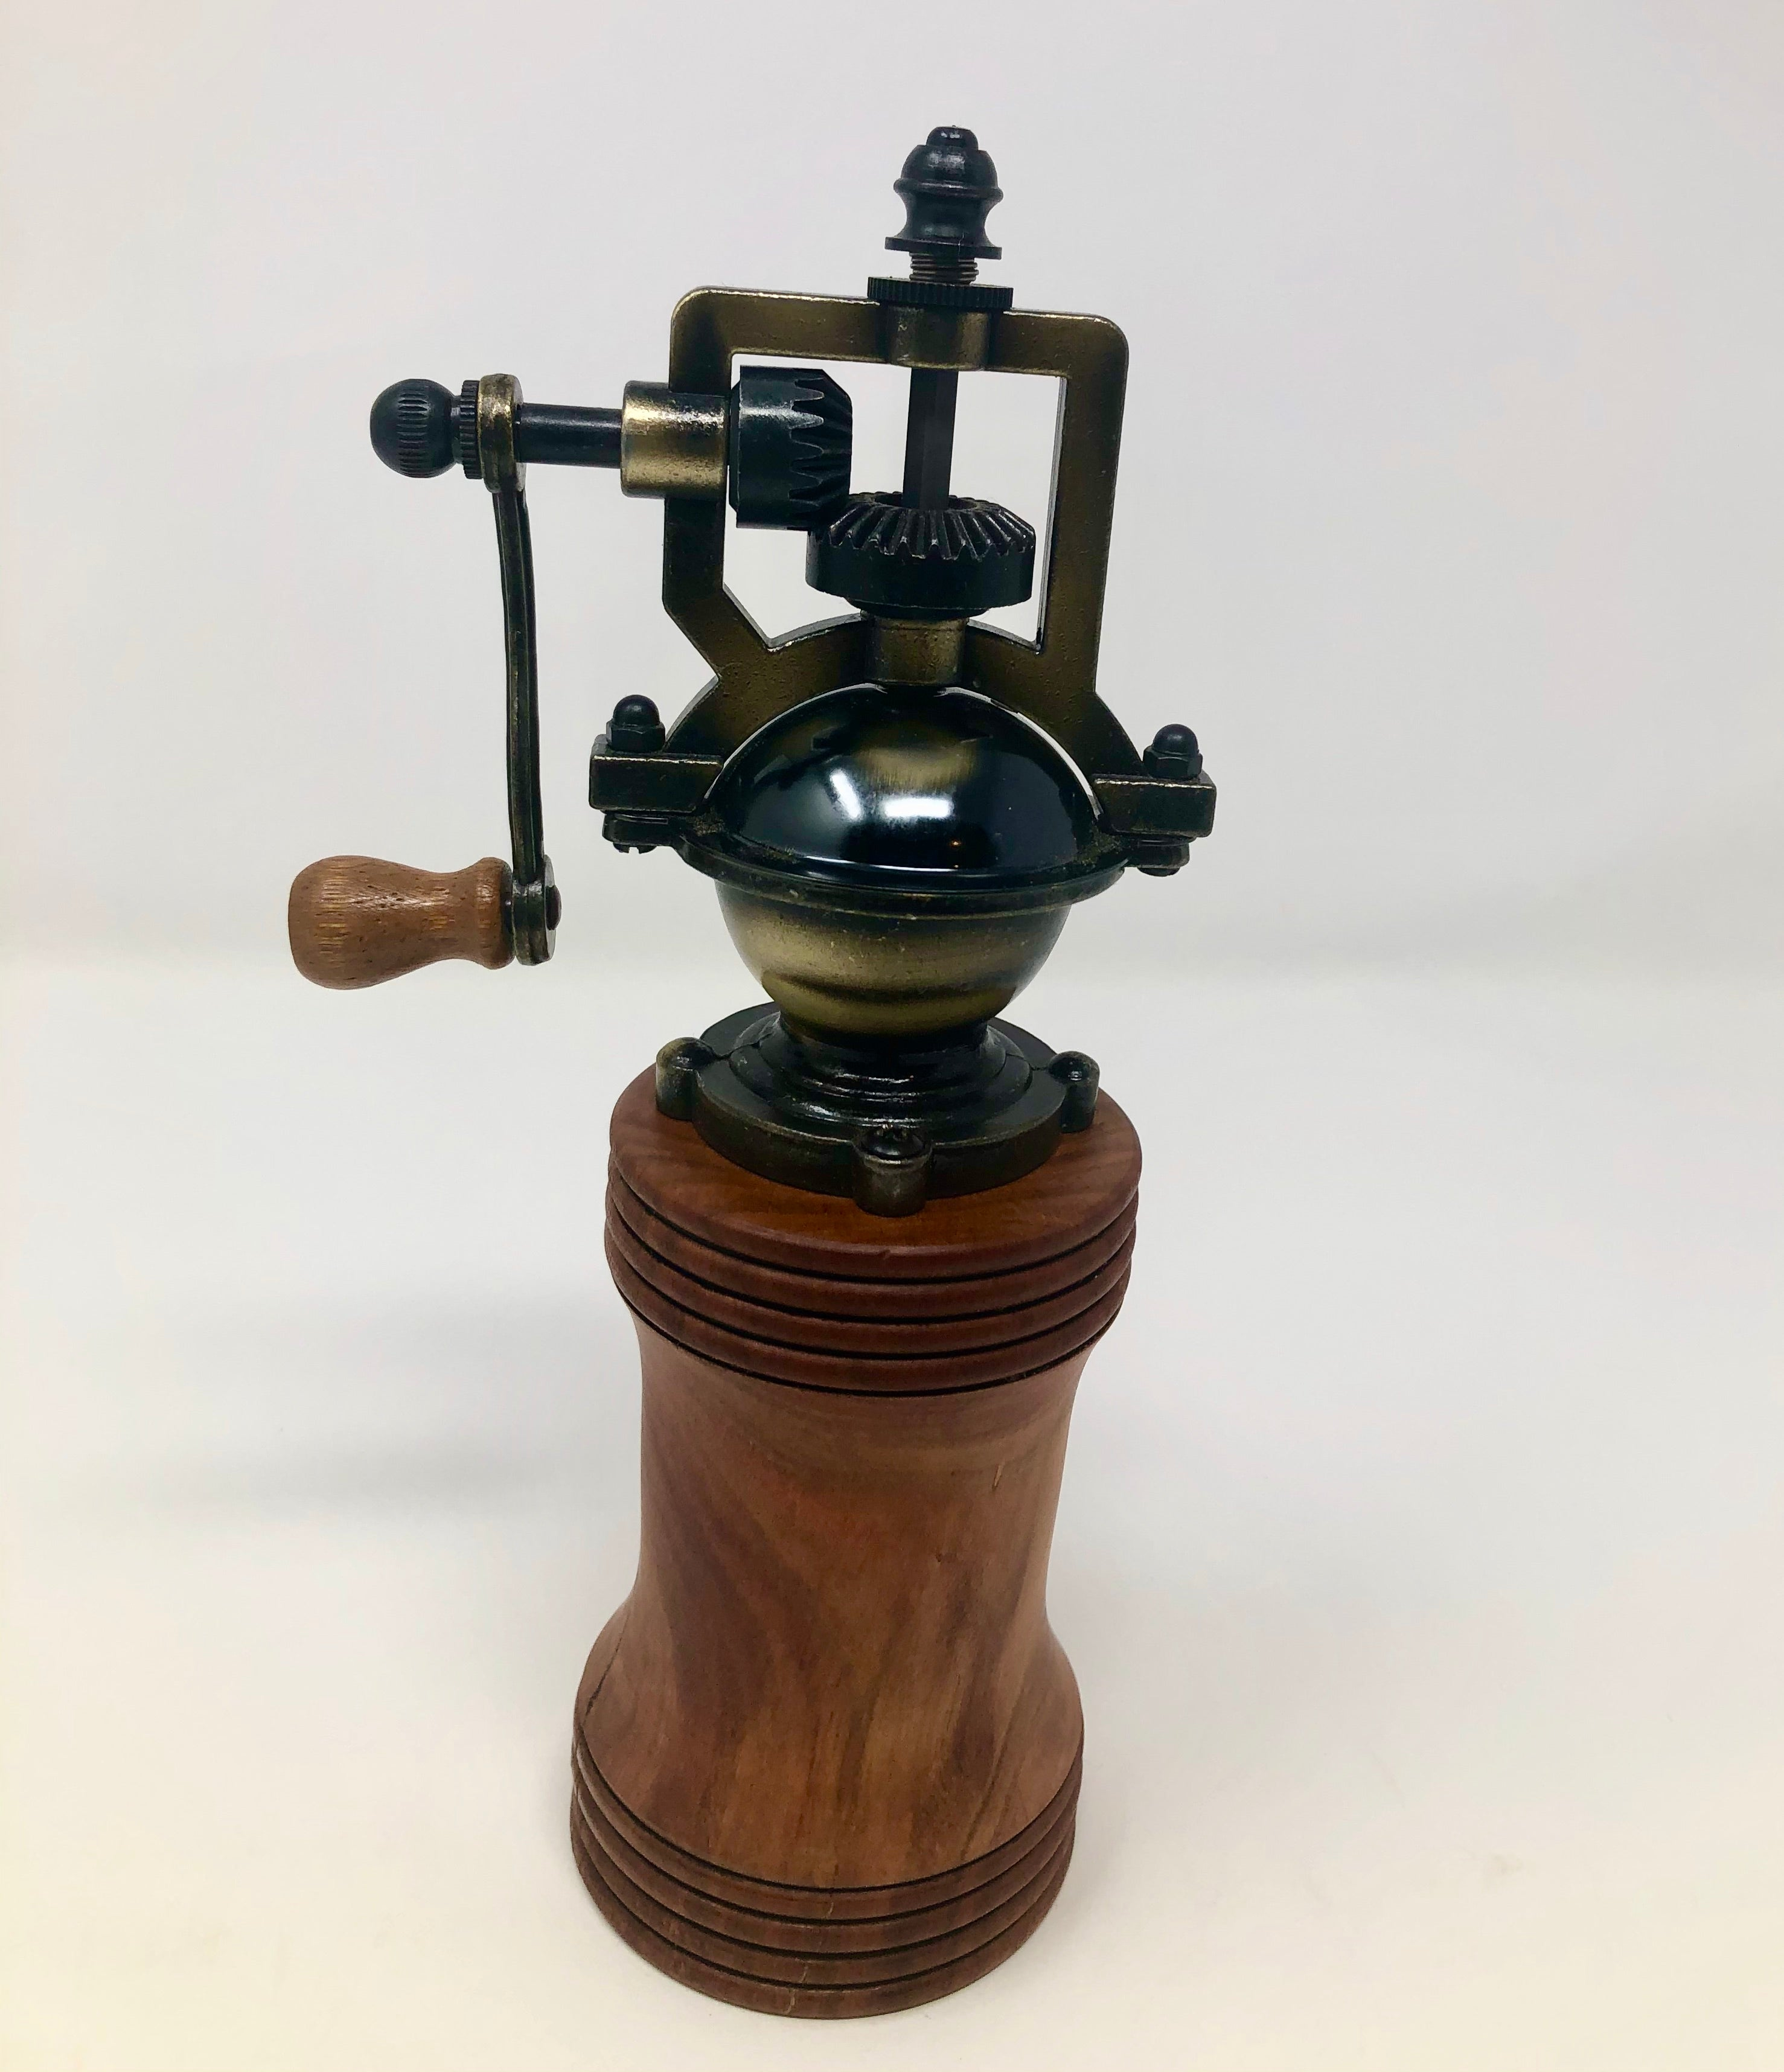 Antique-style Pepper Grinder